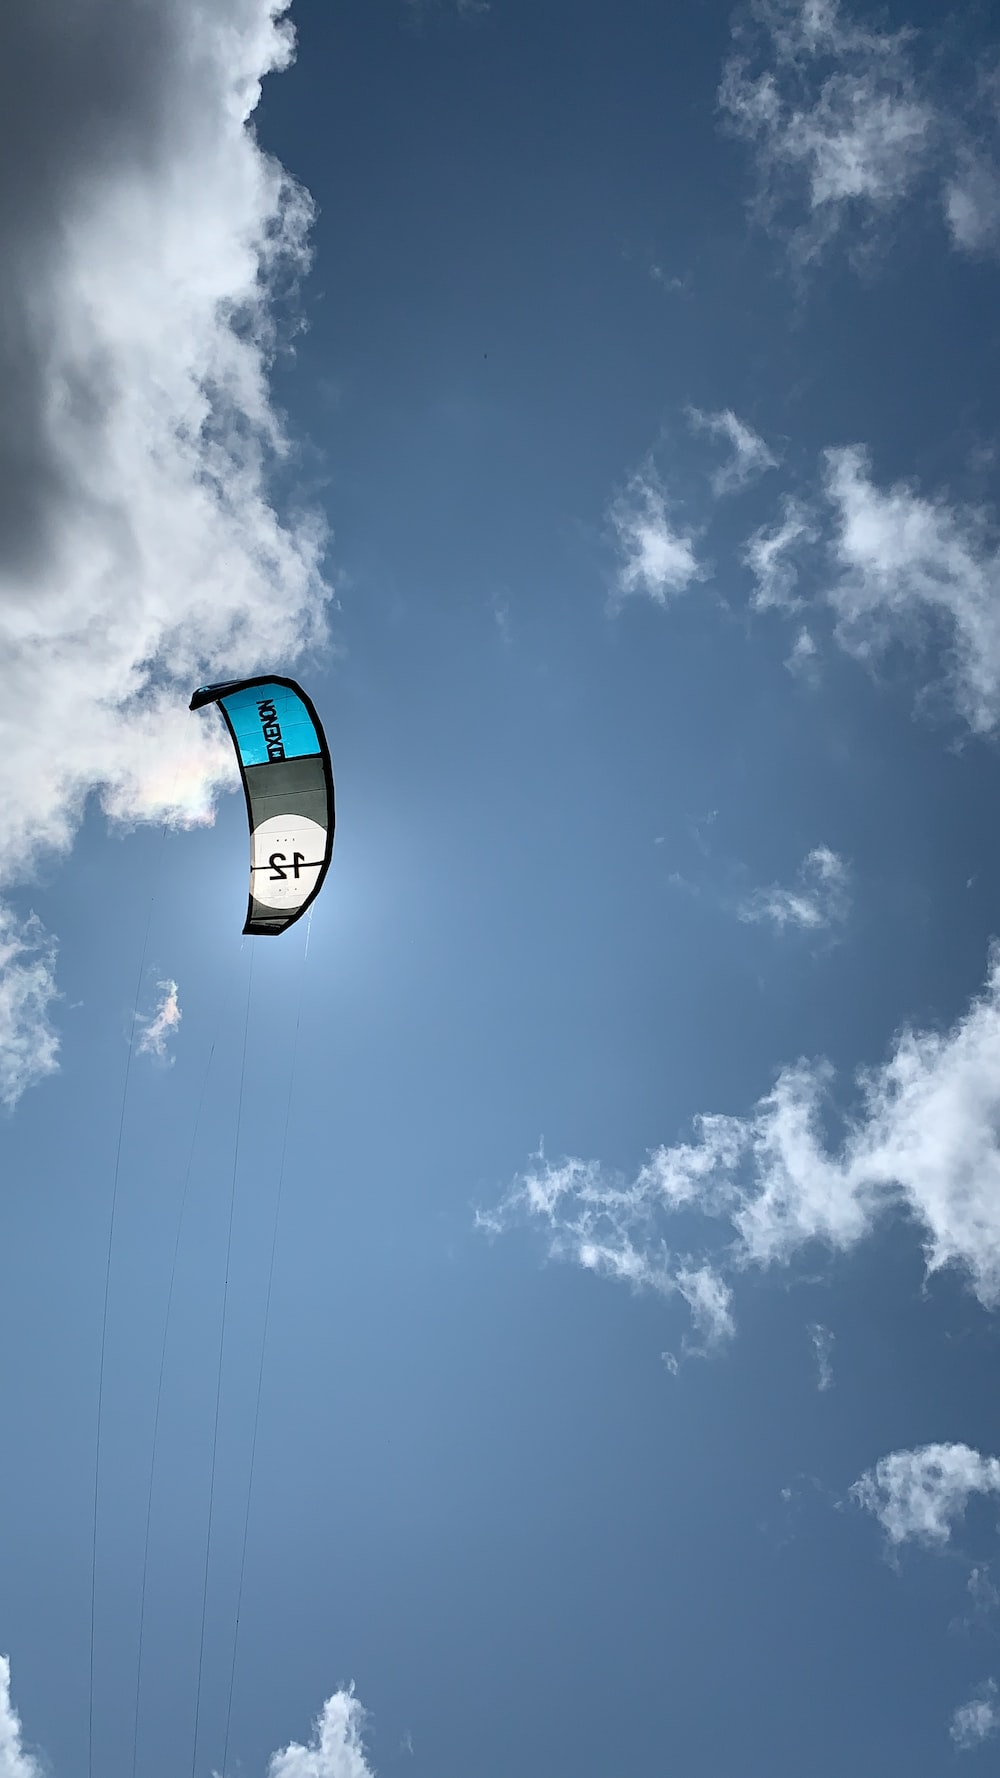 low angle photo of parachute during daytime